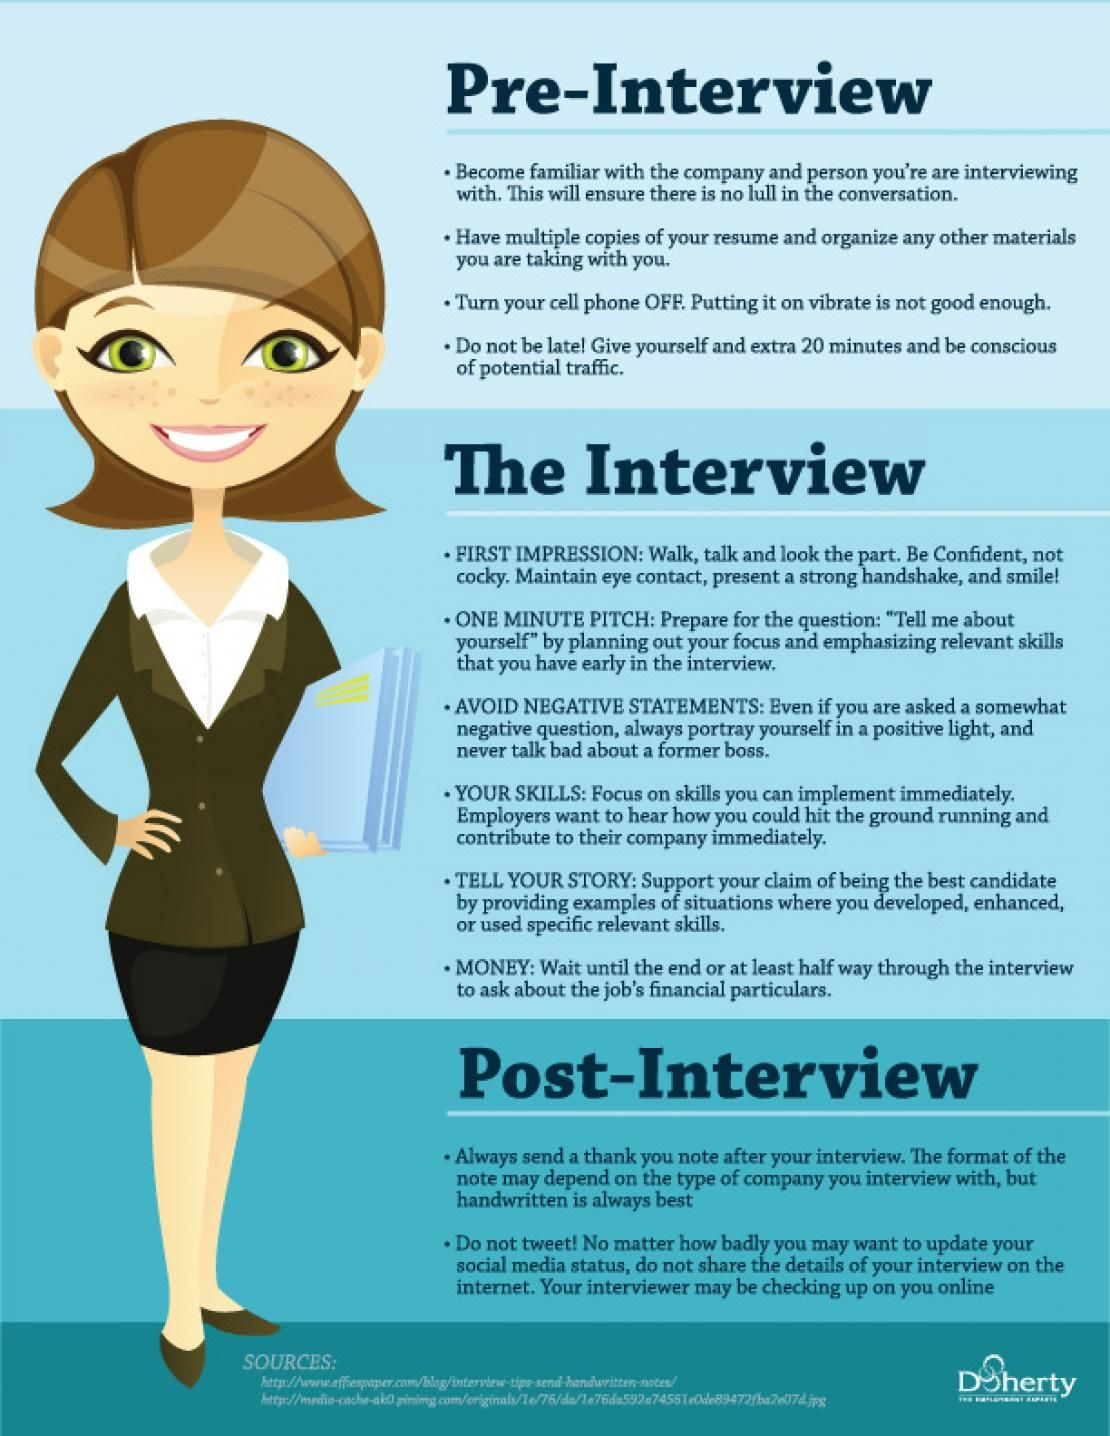 Top job interview questions with answers Repin to your friends and ...